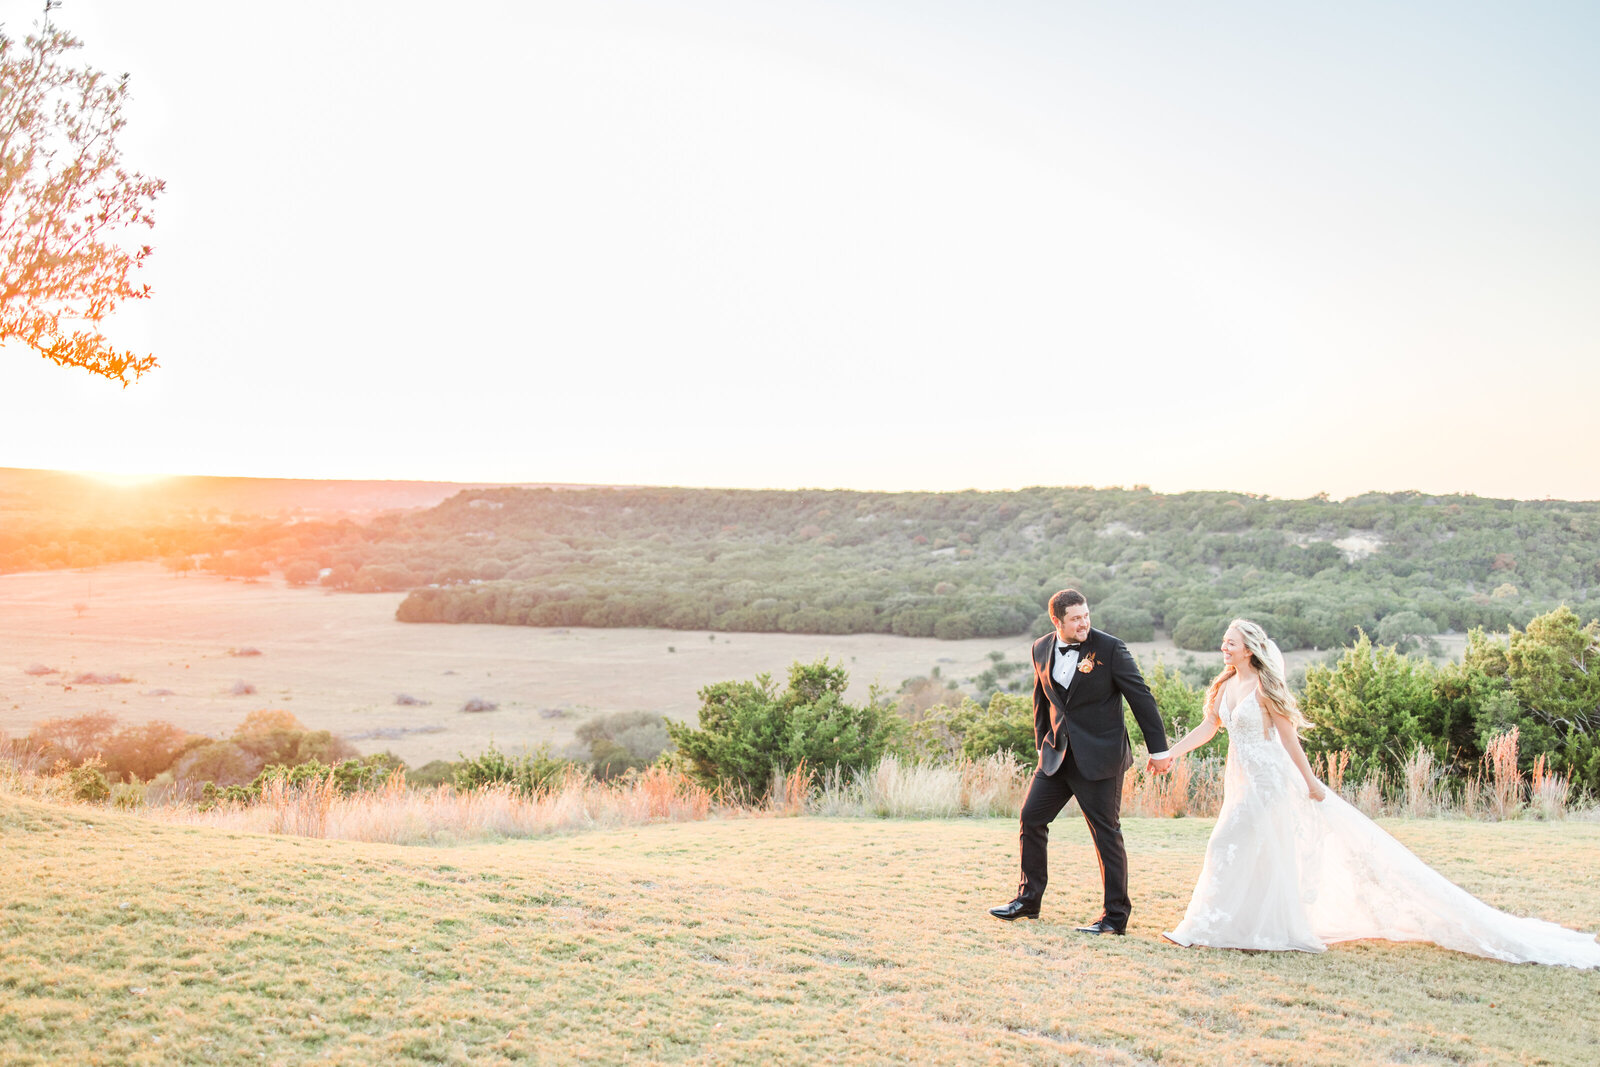 Contigo ranch wedding by fredericksburg texas wedding photographer Allison Jeffers 3